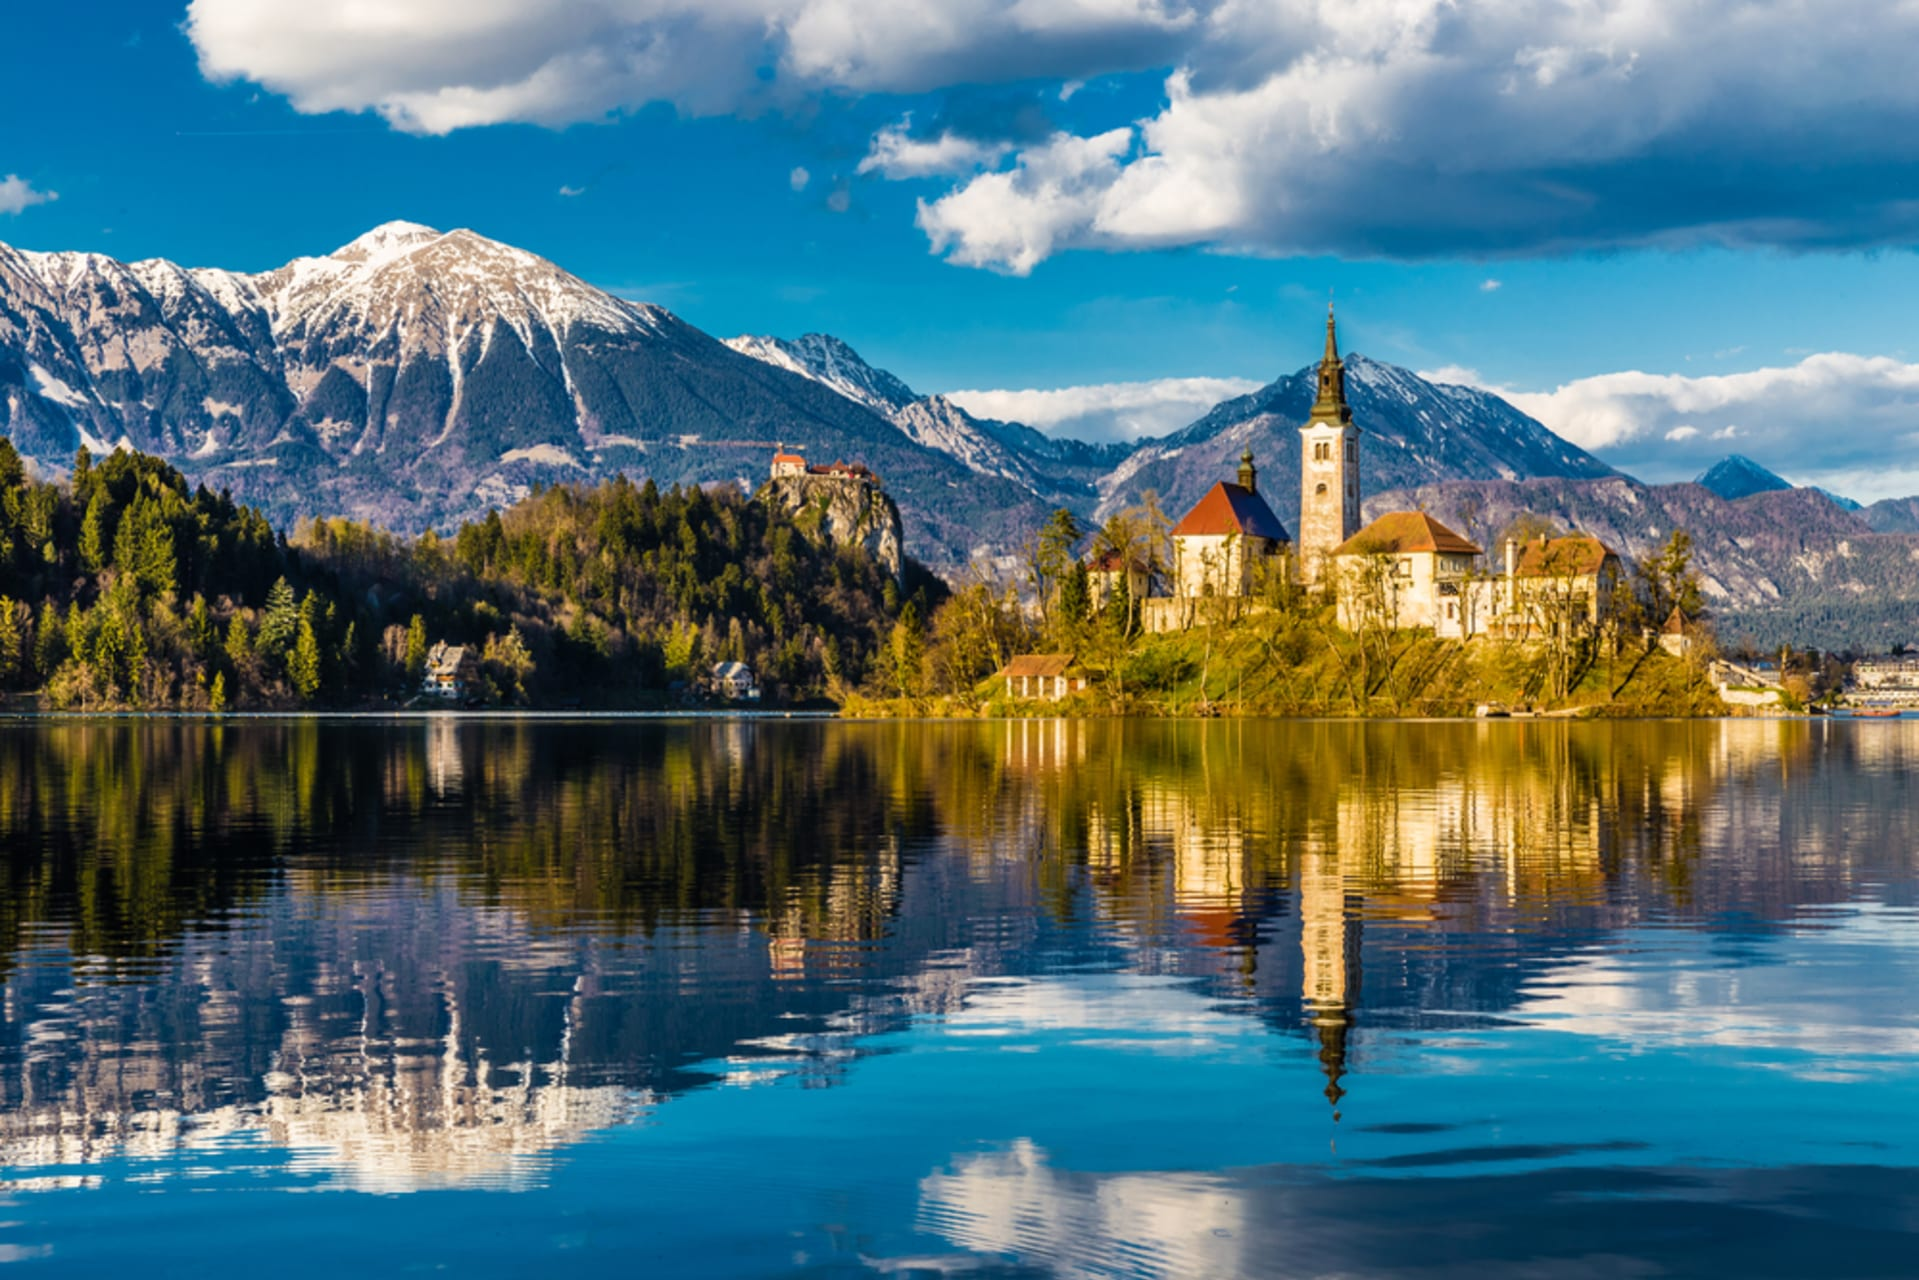 Bled - Charms of Bled island